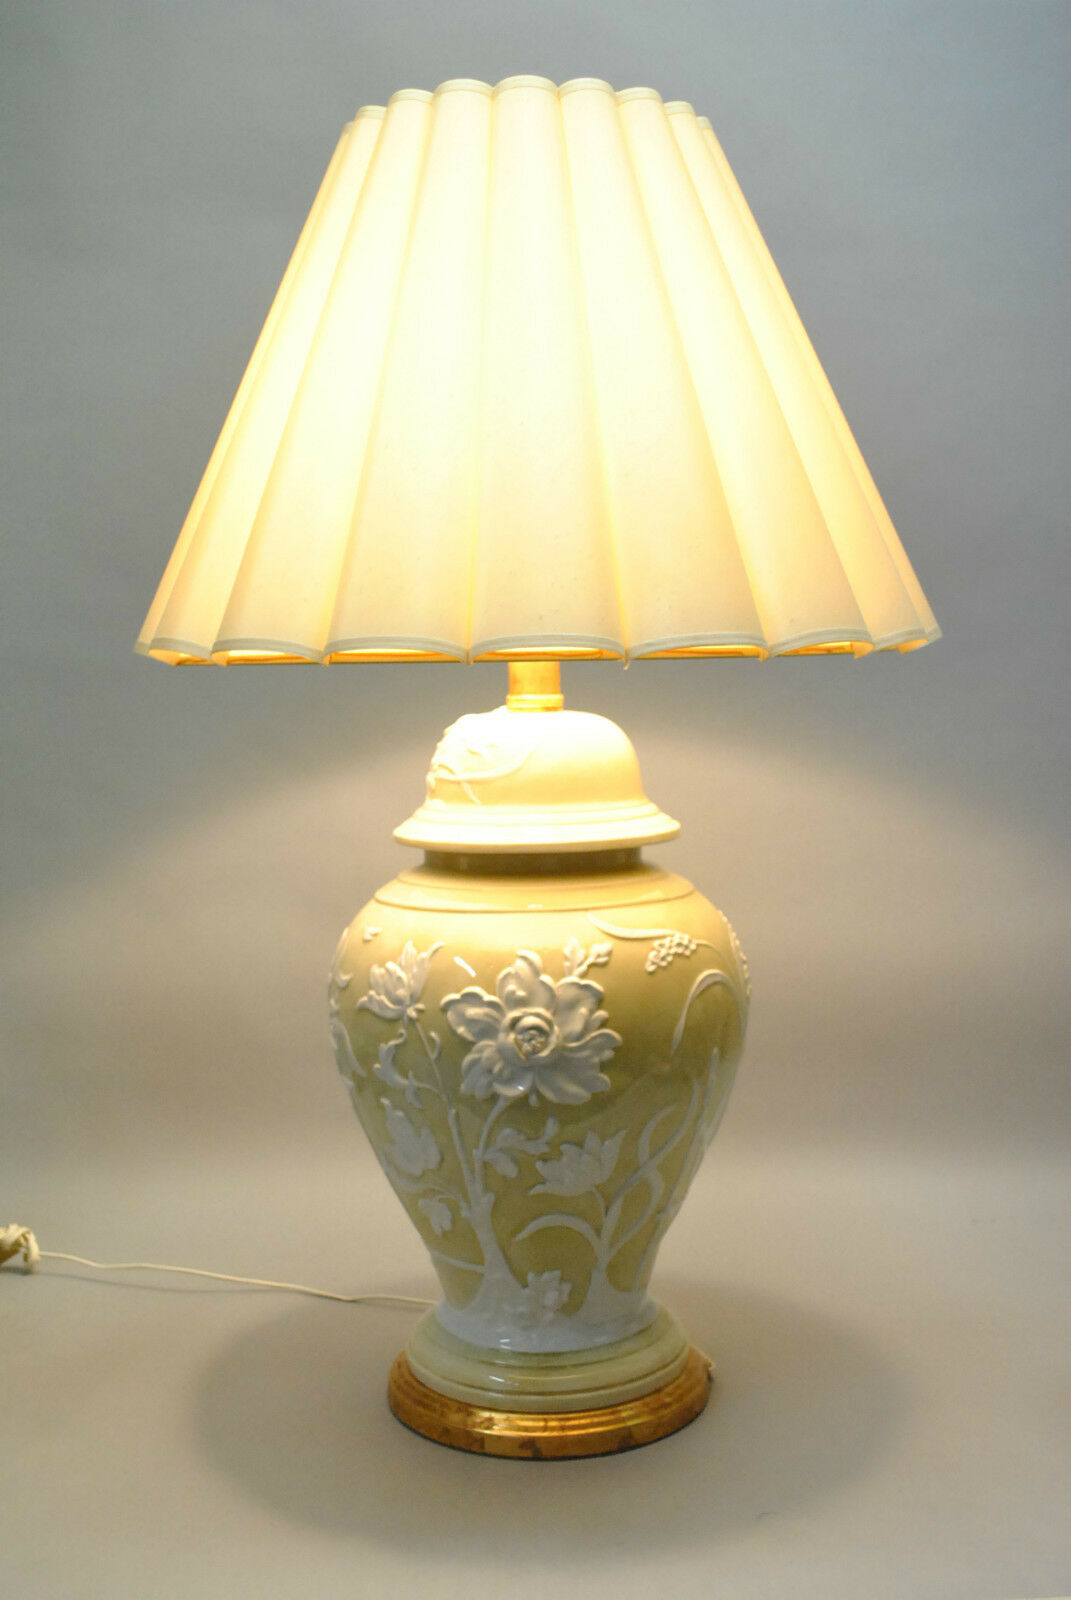 floral contemporary rb provincial ixlib dsc lamps items lamp ebth french style